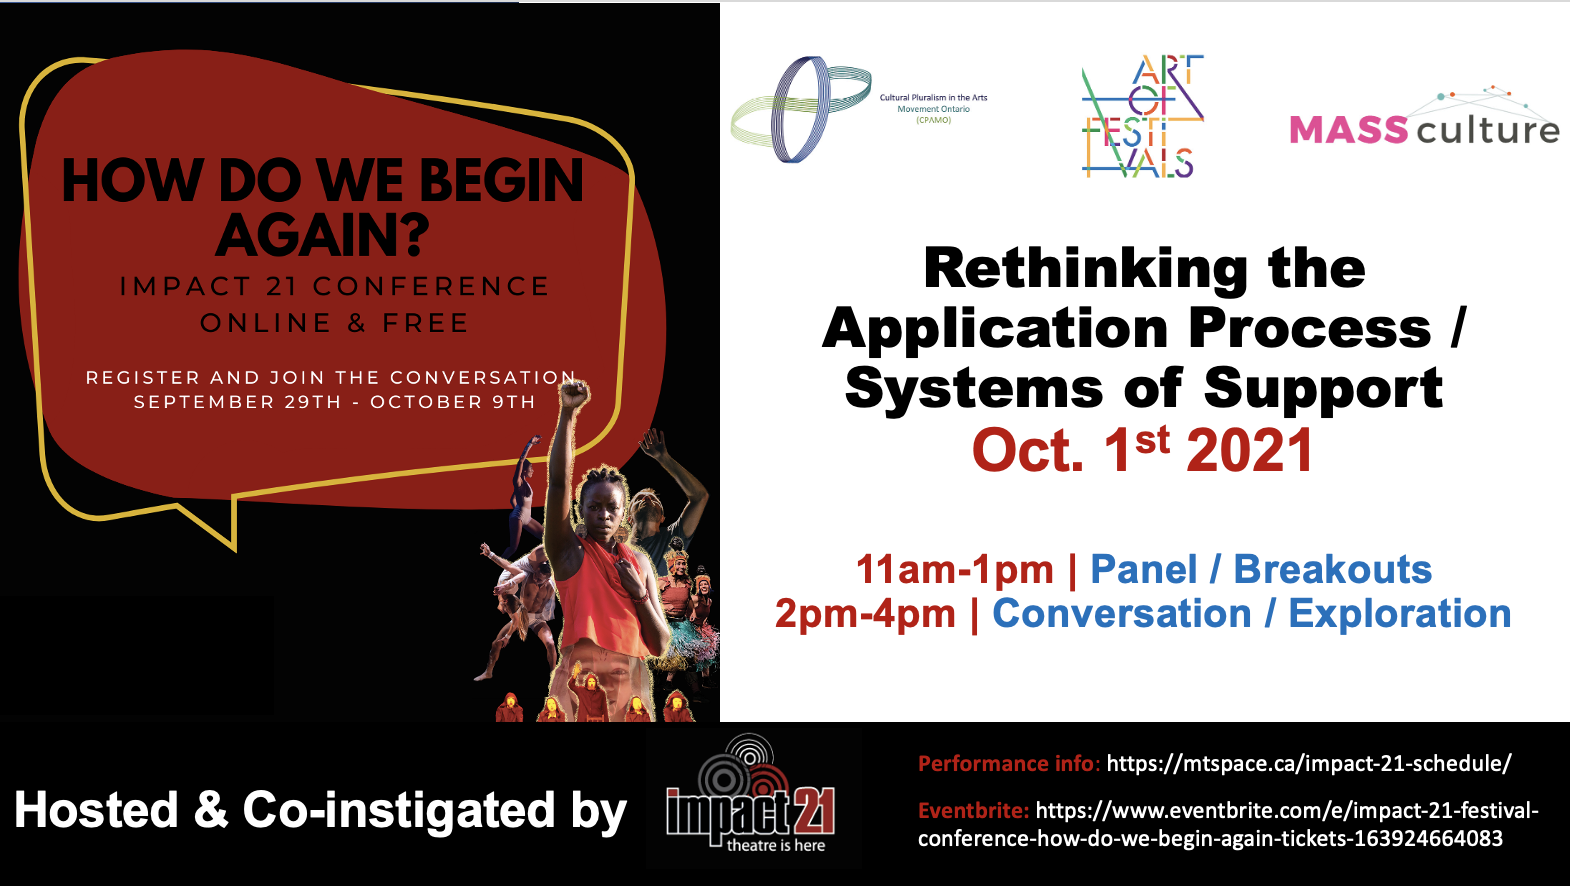 On the left: How do we begin again? Impact 21 conference. Online and free. Register and join the conversation September 29th – October 9th. Beneath the text there is an image with several dancers.  On the right logos of CPAMO, Art of Festivals and Mass Culture. Beneath it: Rethinking the application process/systems of support. Oct. 1st 2021. 11am-1pm, panel/ breakouts. 2pm-4pm conversation/exploration. At the bottom: Hosted and co-instigated by impact21. Performance info https://mtspace.ca/impact-21-schedule/ Eventbrite: https://www.eventbrite.com/e/impact-21-festival-conference-how-do-we-begin-again-tickets-163924664083